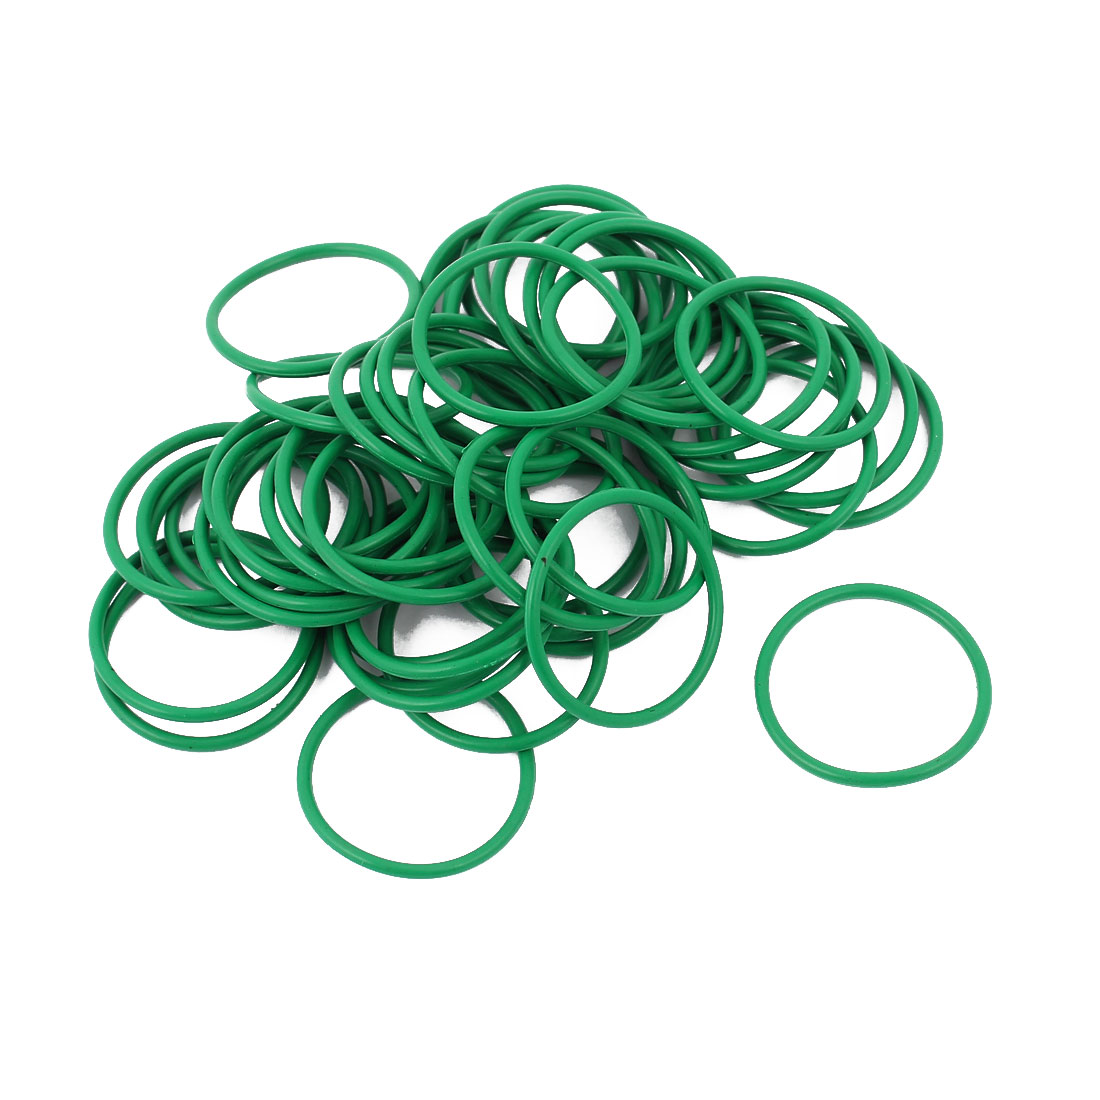 50pcs 1.5mm Thick Heat Resistant Mini Green O-Ring Rubber Sealing Ring 23mm OD